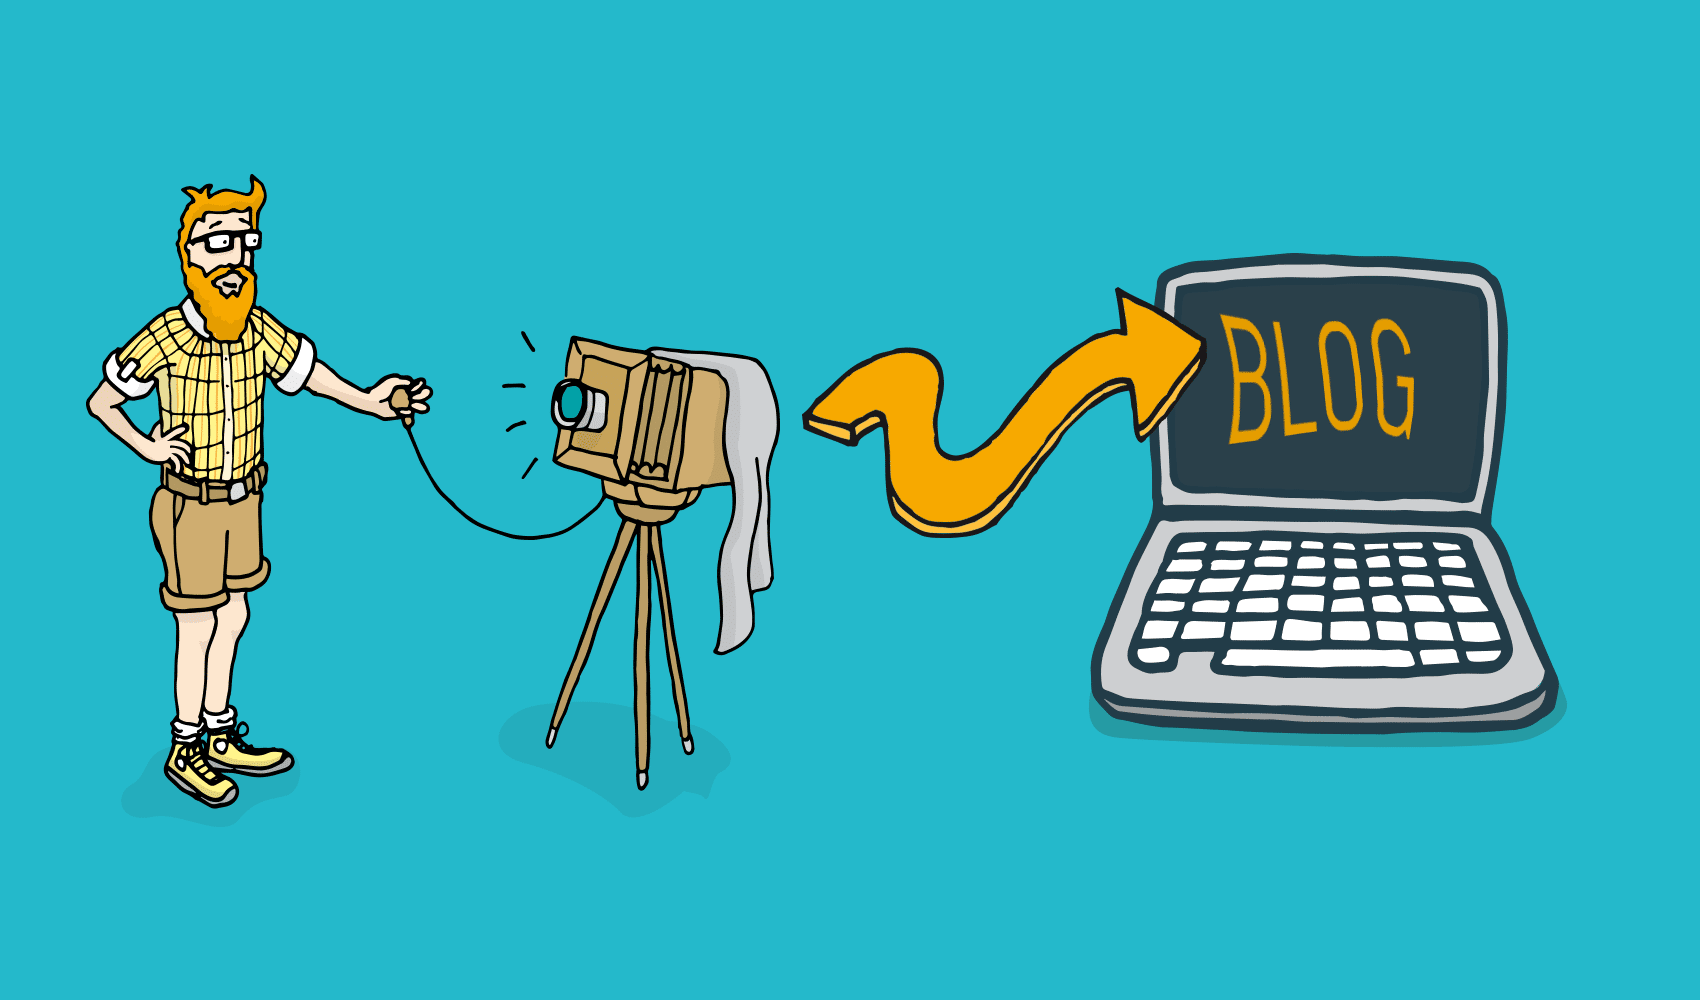 872e6f9577 Blog Images  The Ultimate Guide to Use Images in Your Blog